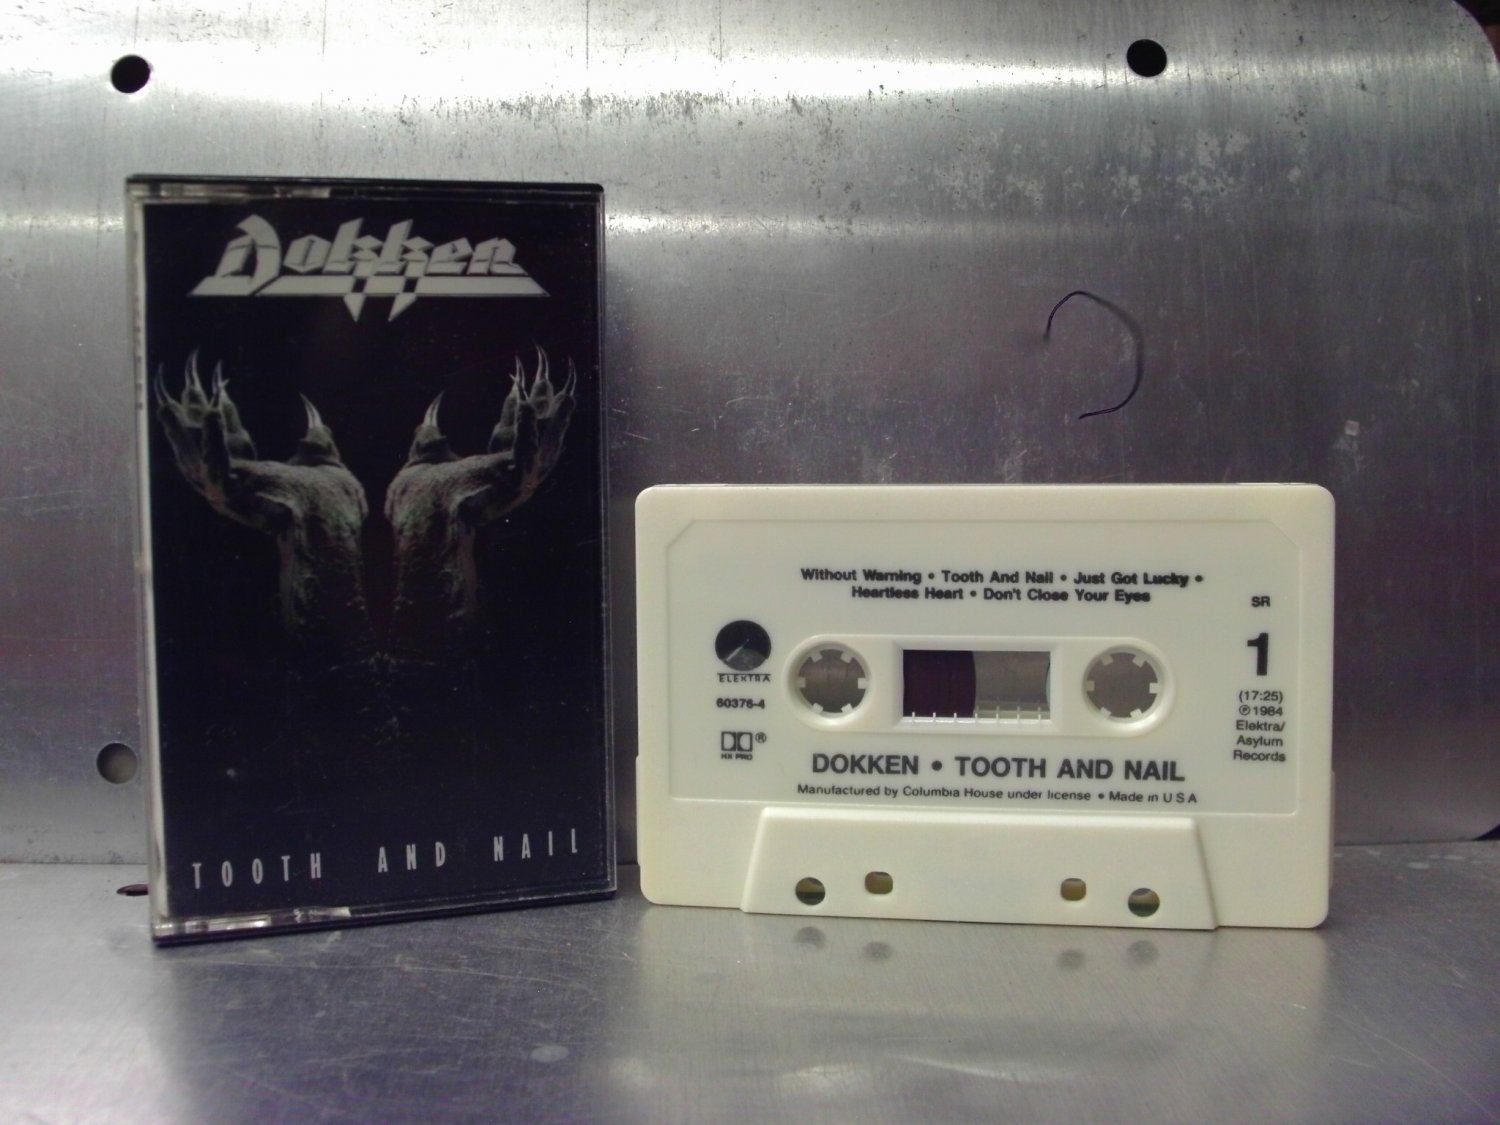 Dokken - Tooth And Nail Cassette Tape A1-79